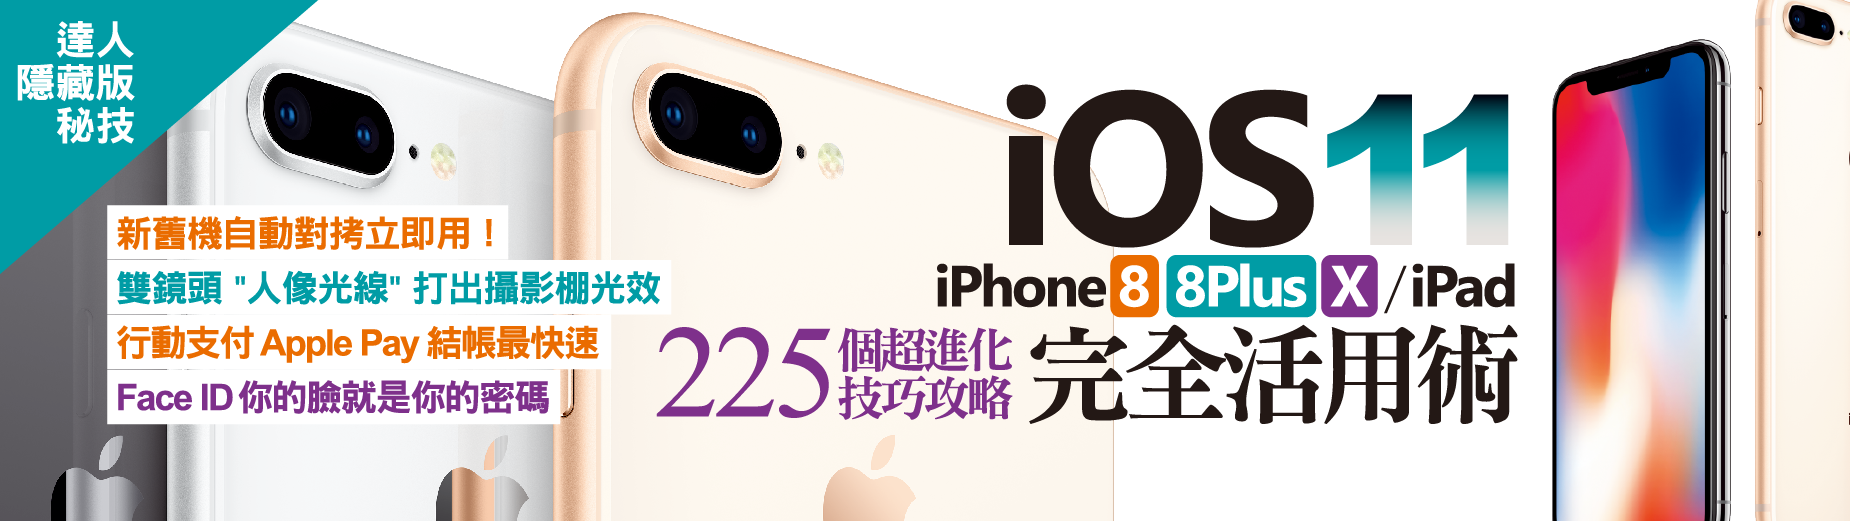 iOS 11+iPhone 8 / 8Plus / X / iPad 完全活用術:225個超進化技巧攻略